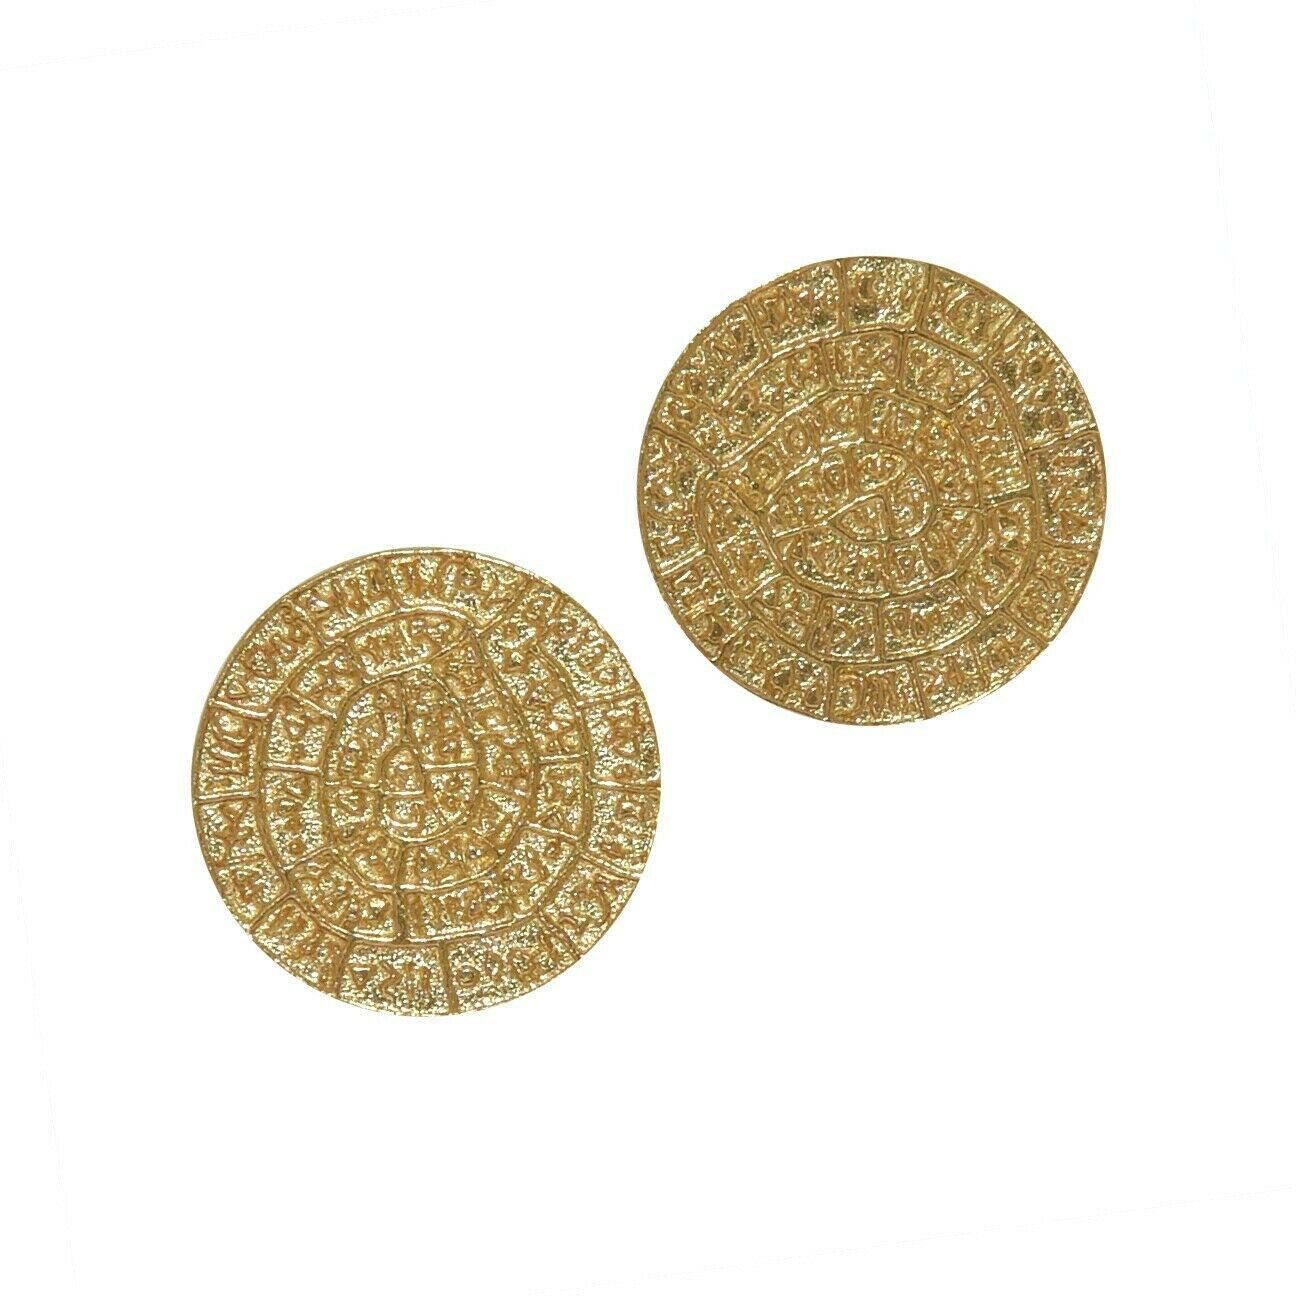 Phaistos Disc Knossos Earrings Silver Sterling 925 Gold Plated Greek Handmade L